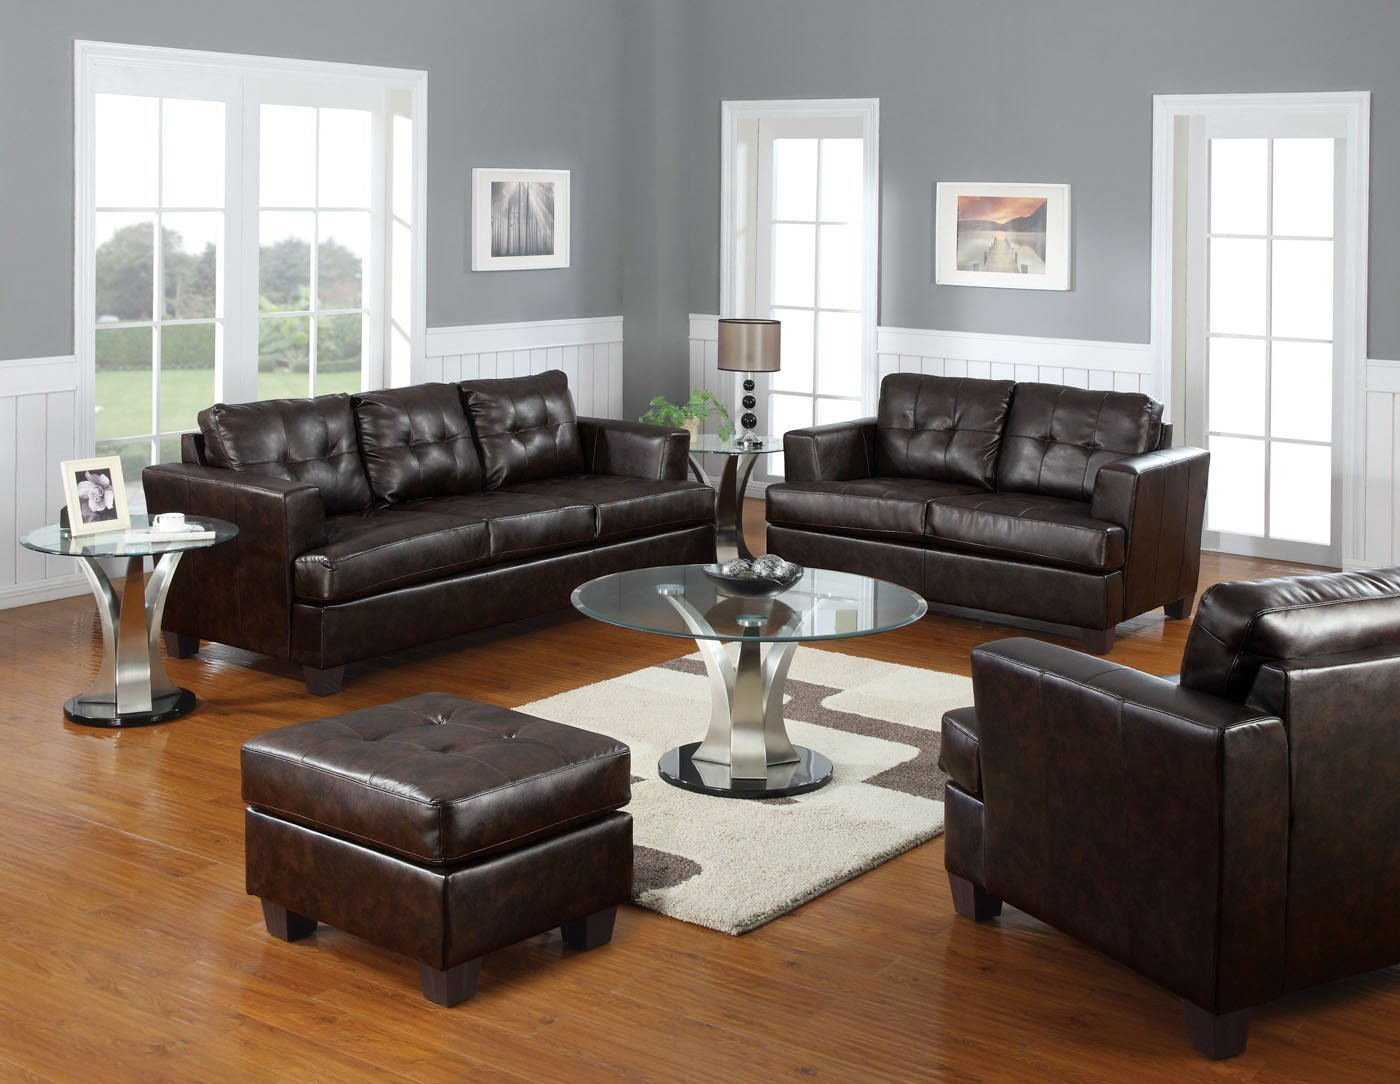 Acme 15070B Diamond Bonded Leather Sofa with Wood Leg, Brown